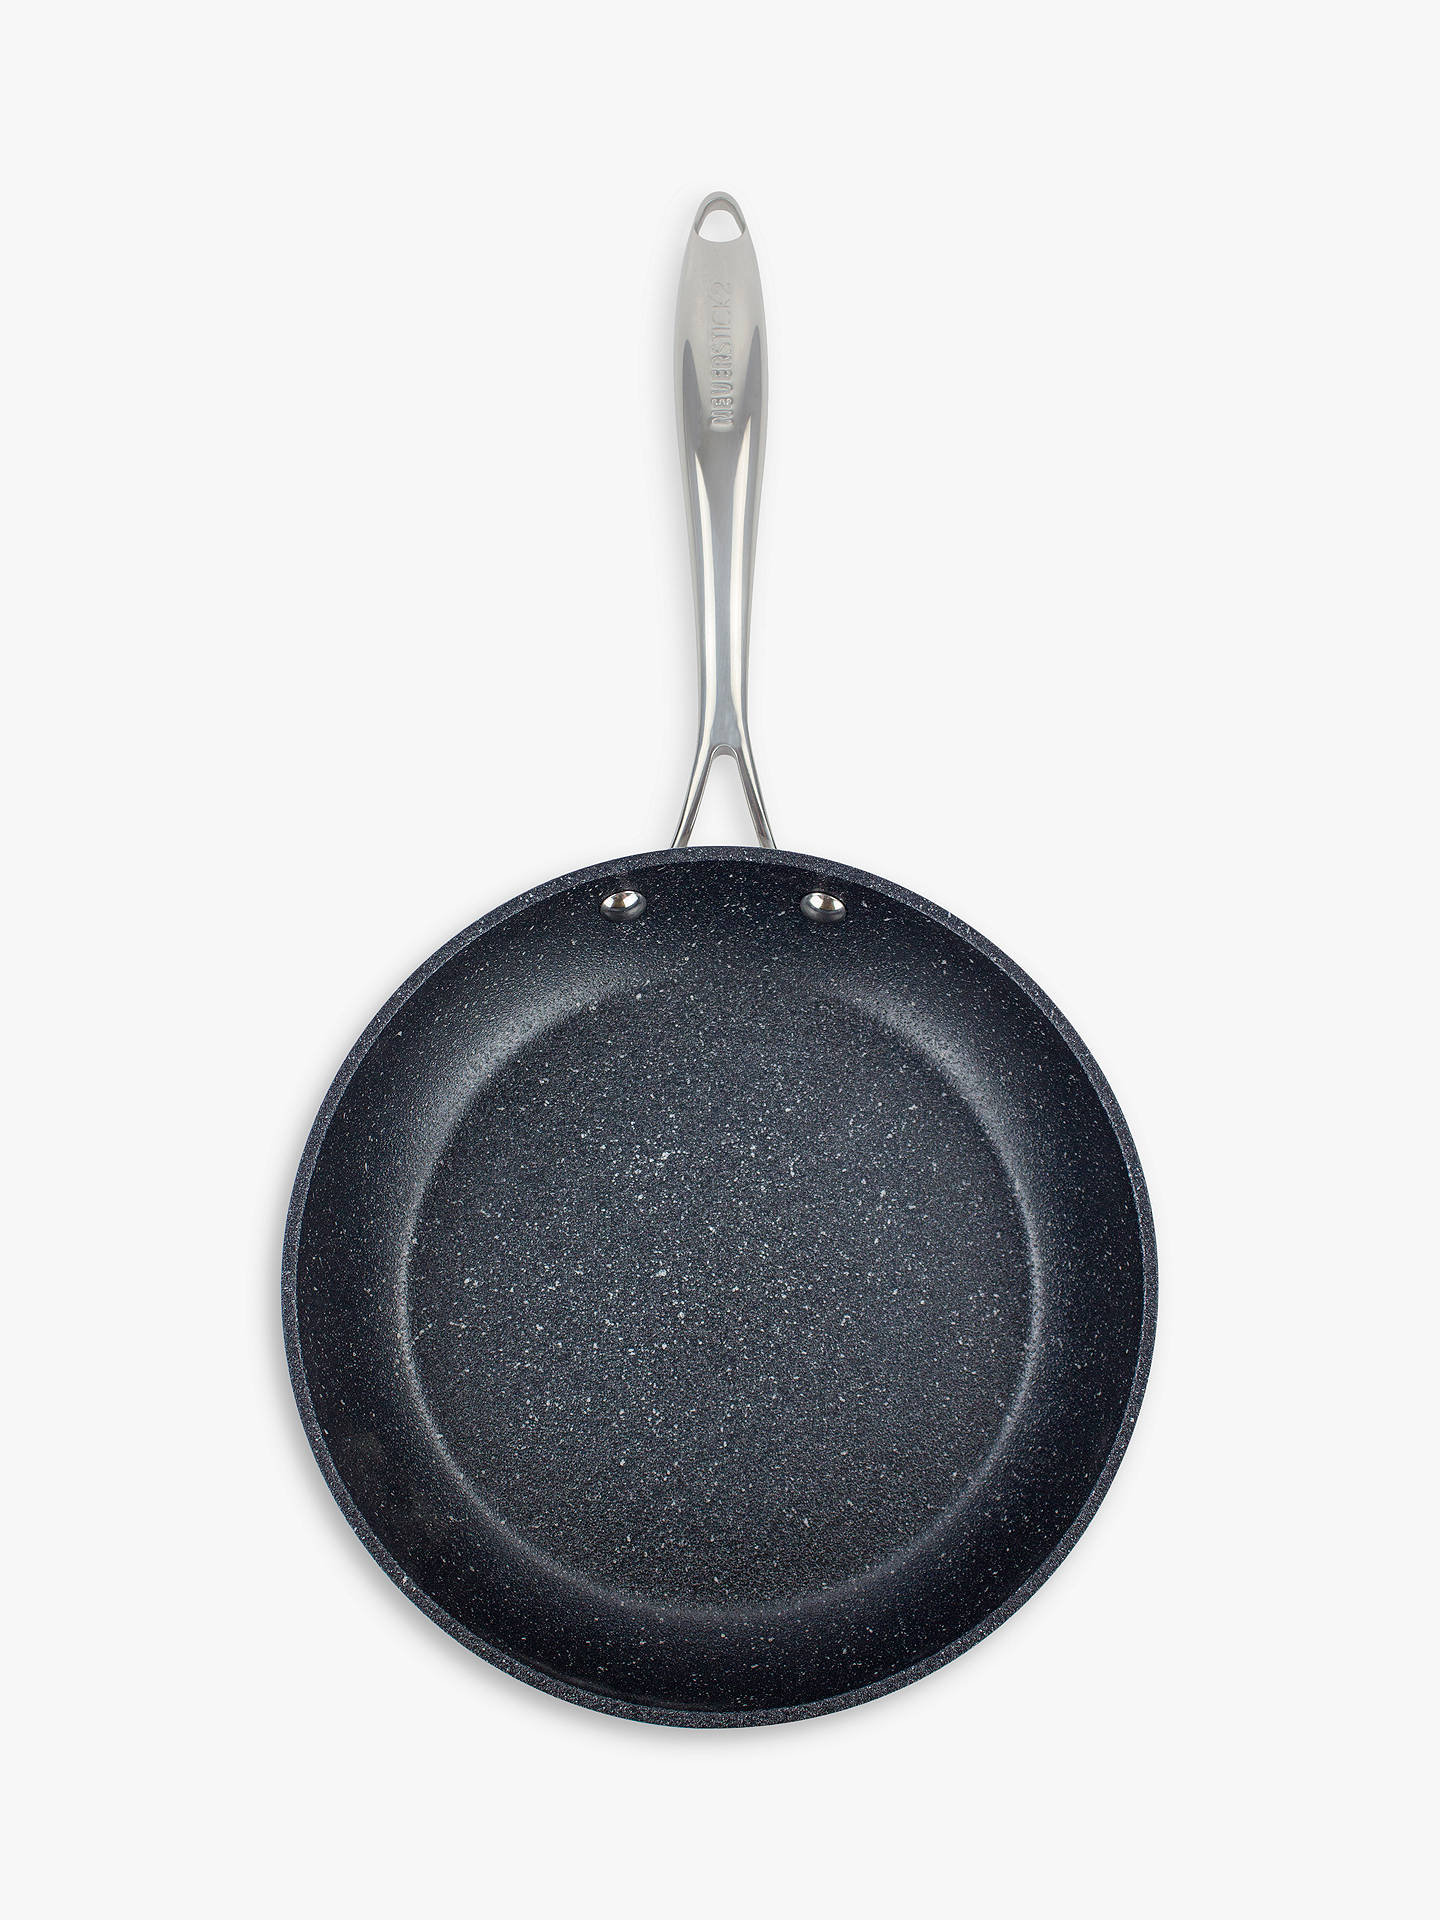 BuyEaziglide Neverstick2 Limited Edition Frying Pan, Dia.24cm, Gold Online at johnlewis.com